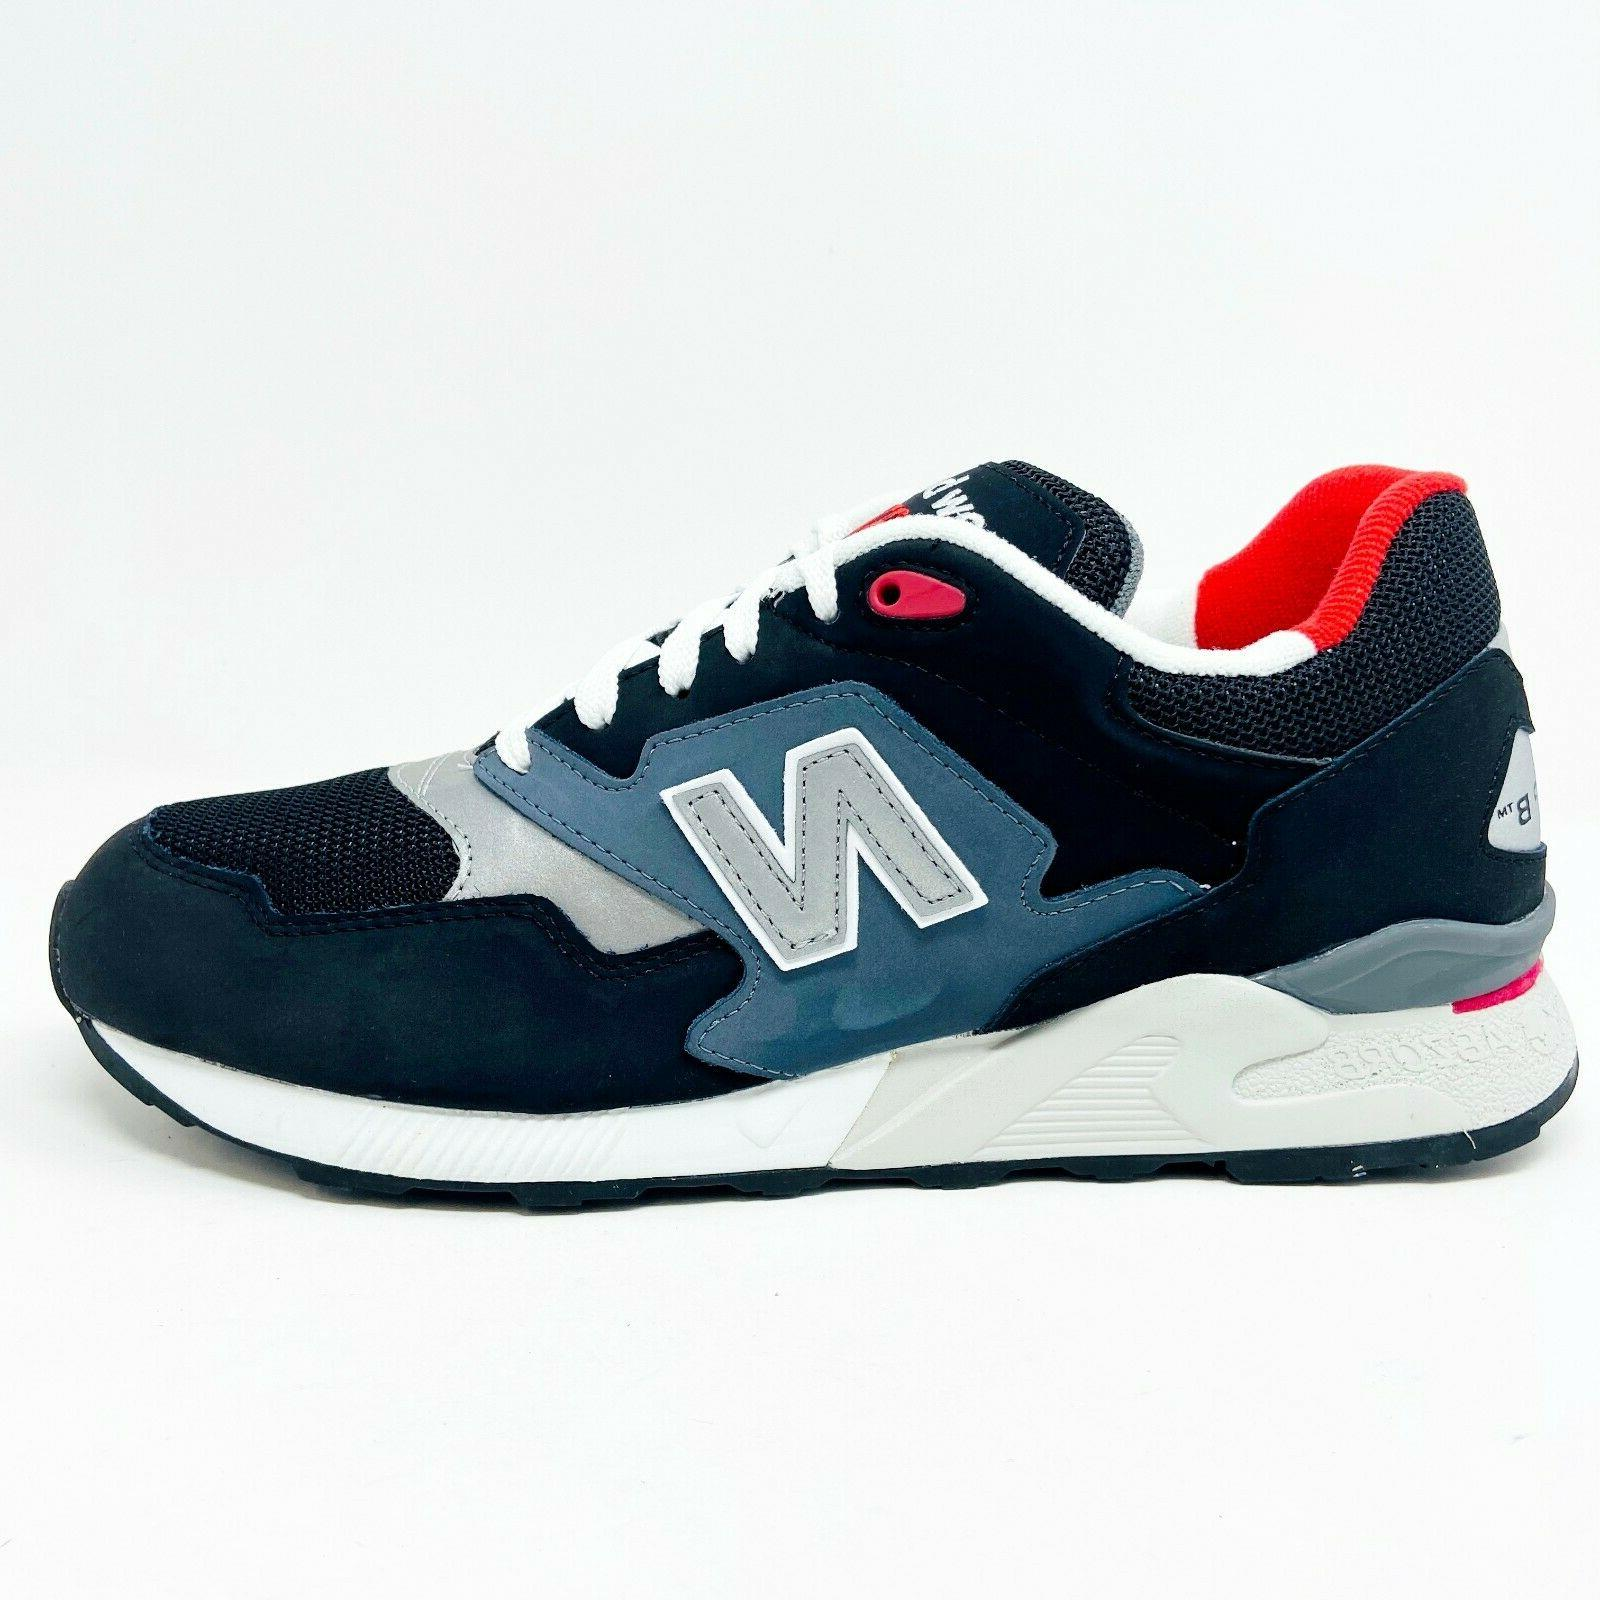 New Balance 878 Classics Leather Gray Red Mens Sneakers